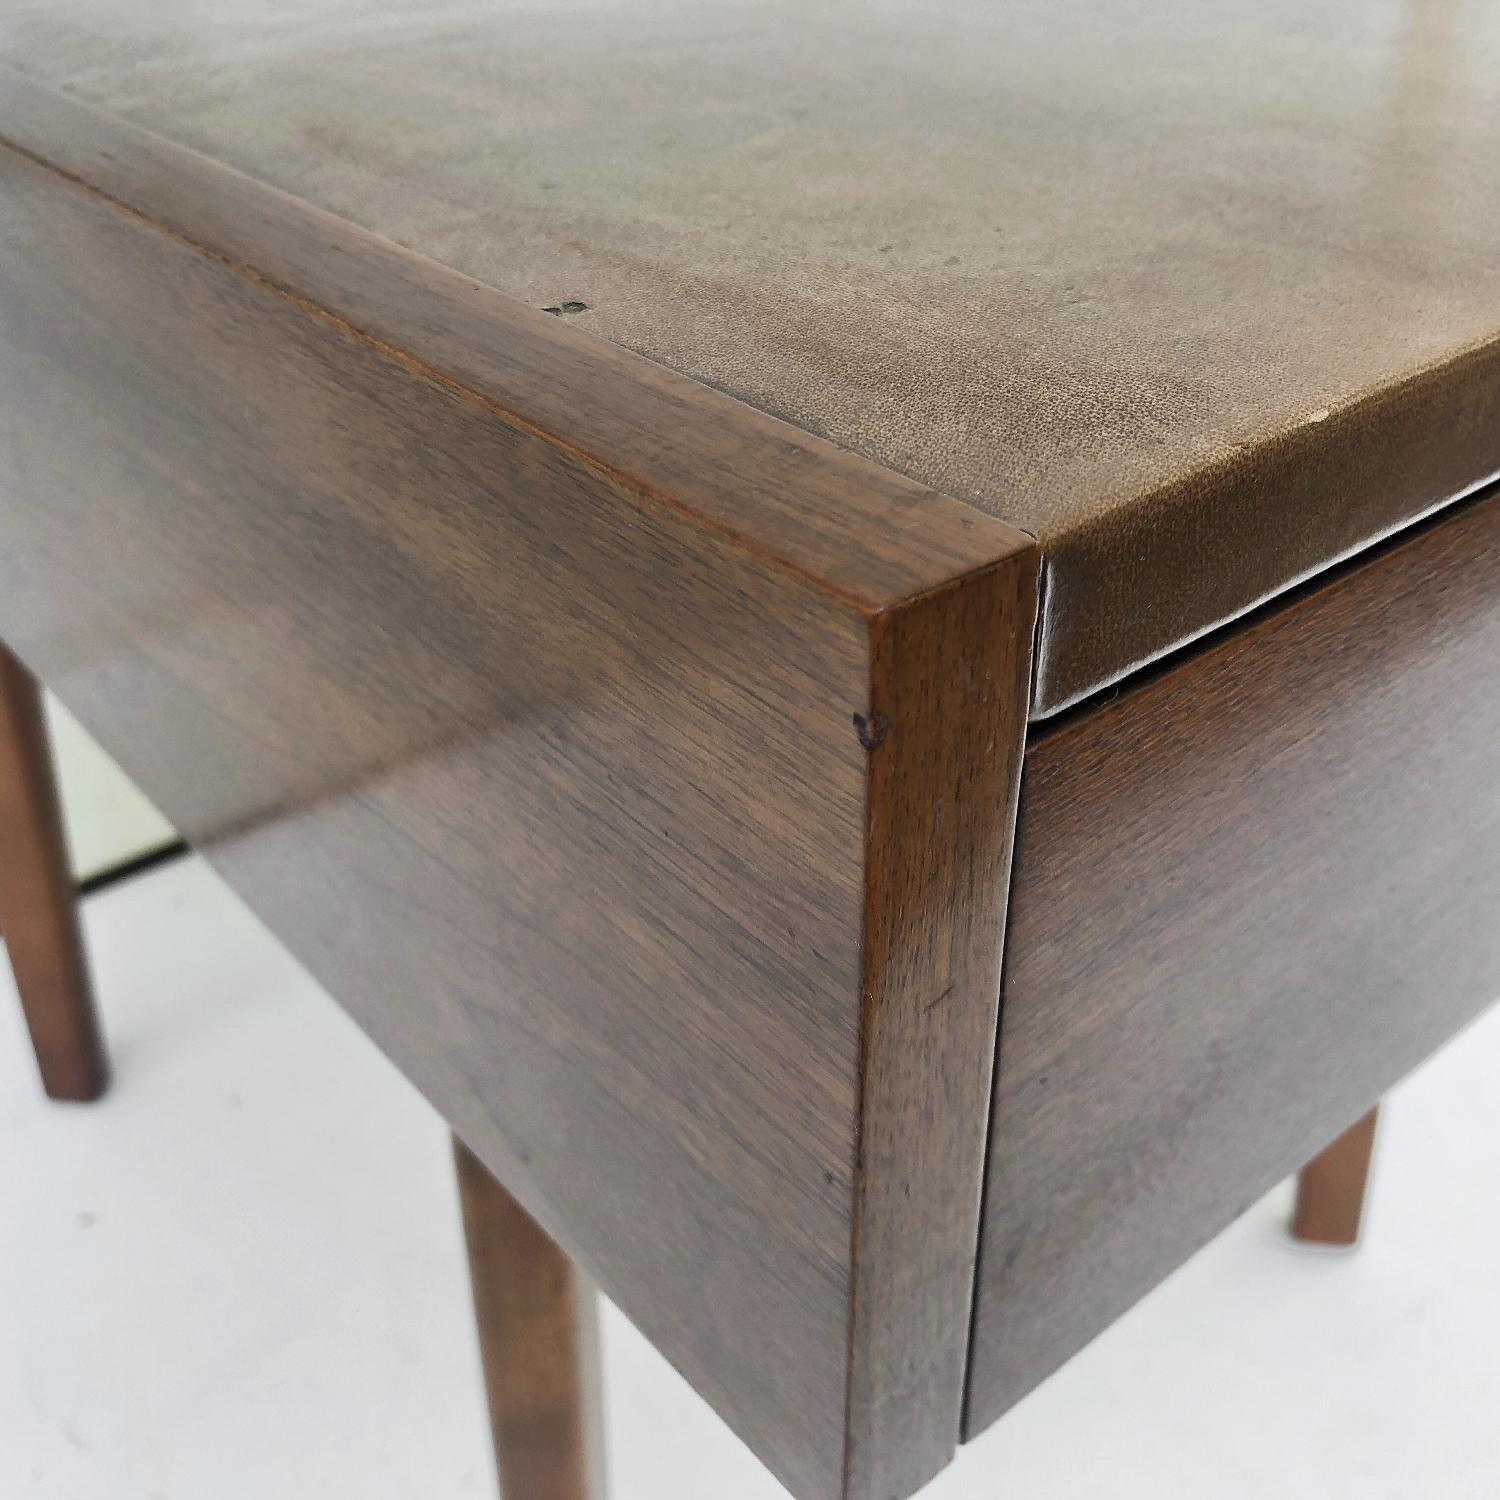 Herman Miller Side Tables by George Nelson - image-8